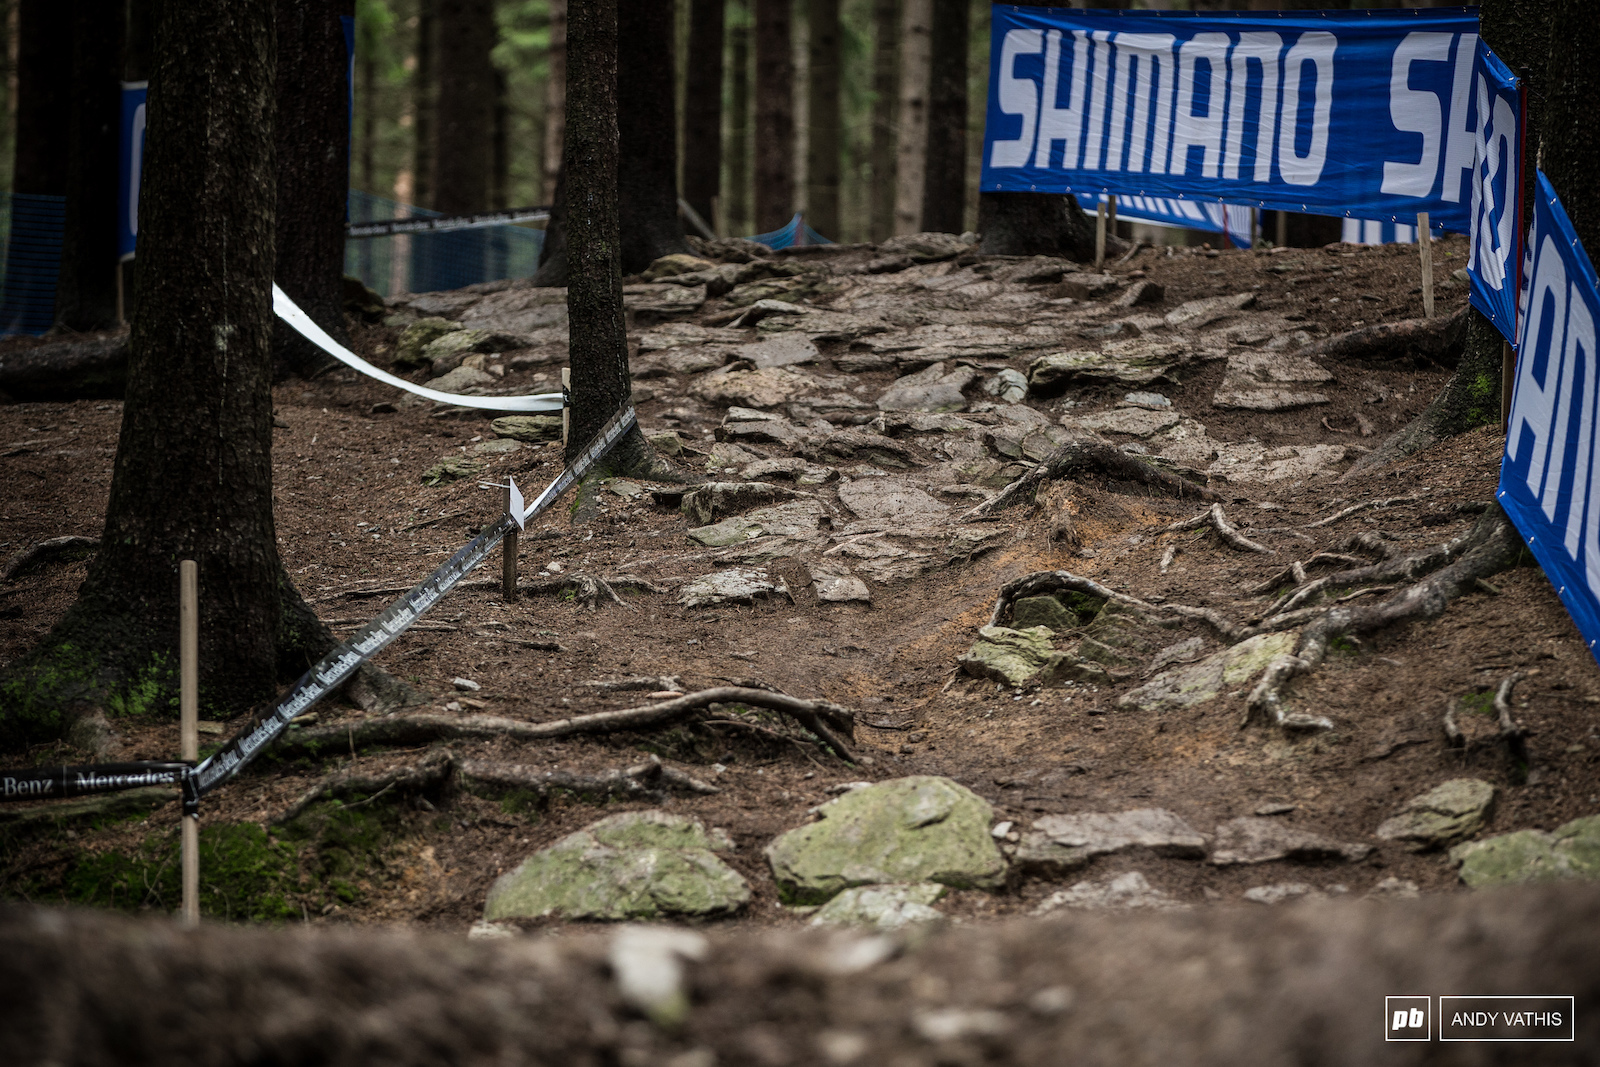 The Shimano Expert Climb is the first major obstacle racers will face on this course. Slippery rocks in the wet and dry.